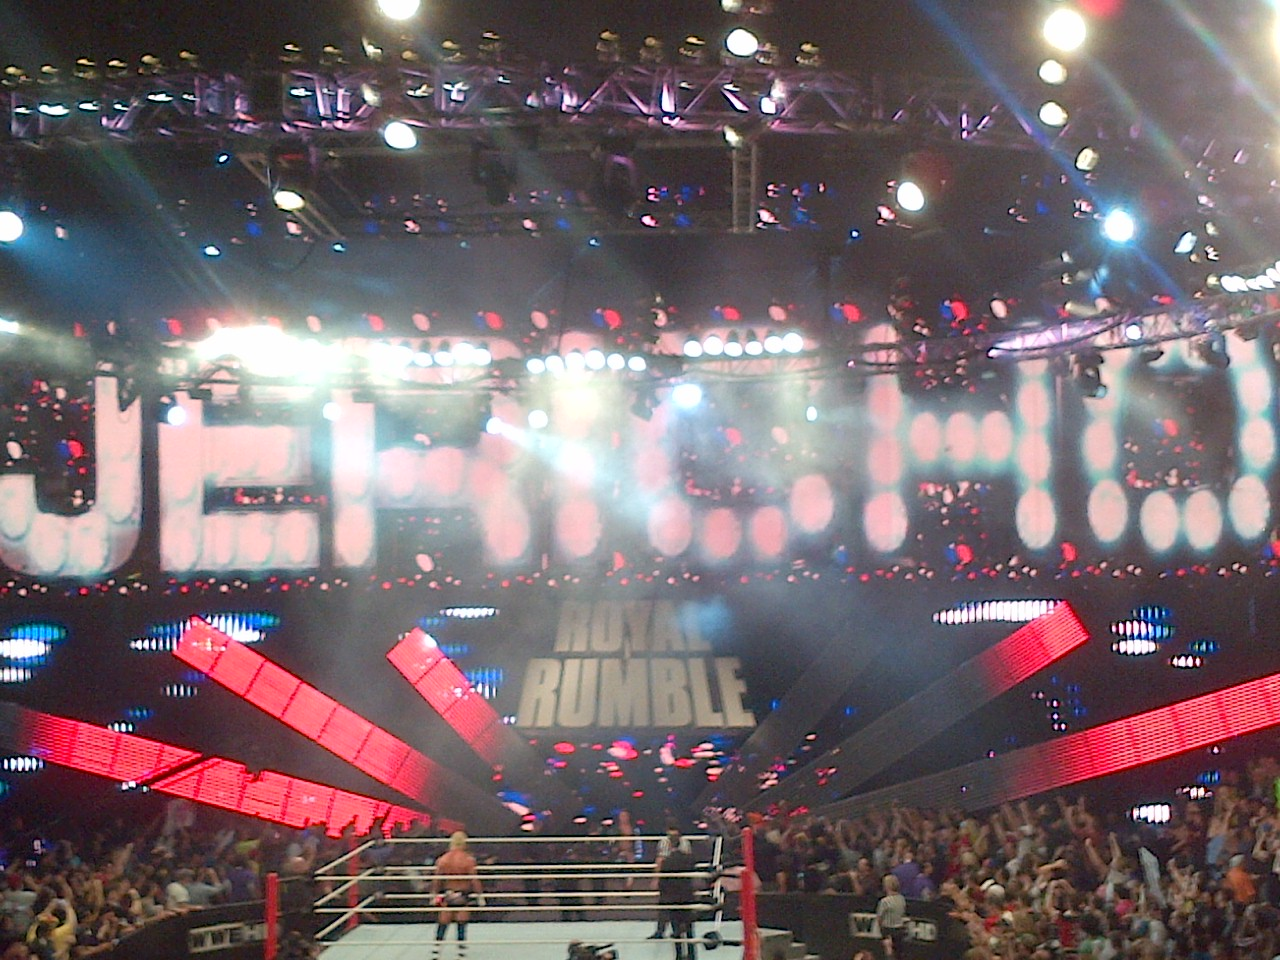 To say the place came unglued when Chris Jericho made his surprise return does it nowhere the justice it deserves